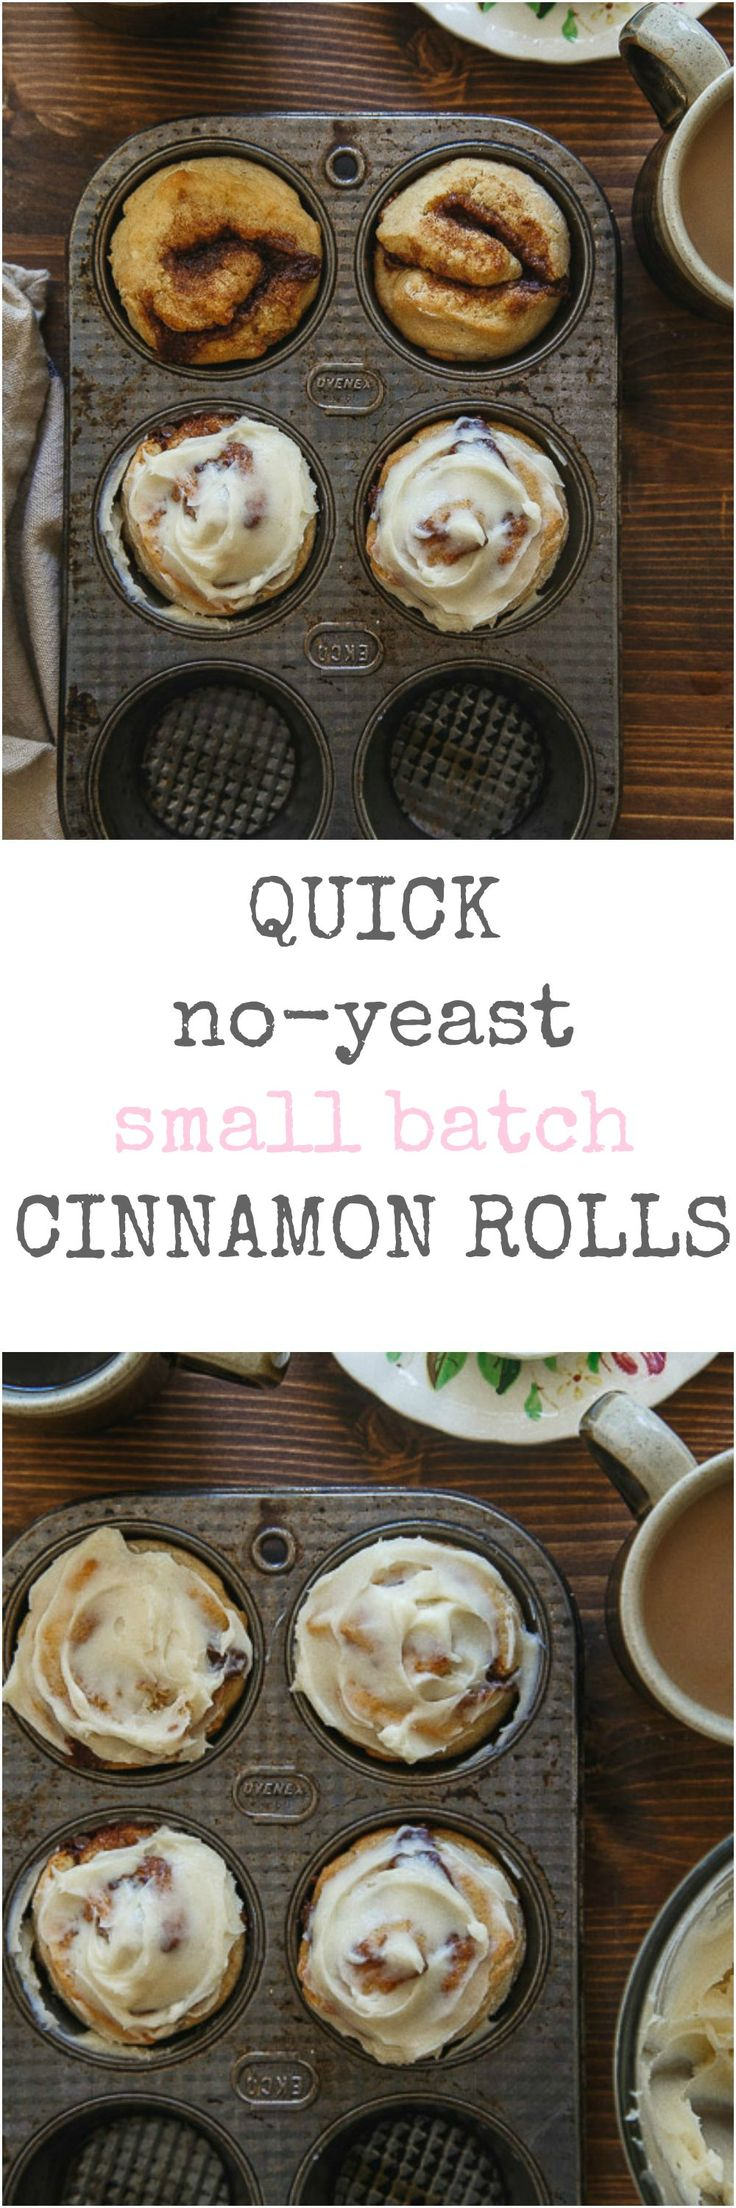 A small batch of easy cinnamon rolls. No yeast required! Makes 4 delicious rolls! (Gluten Free Recipes Biscuits)